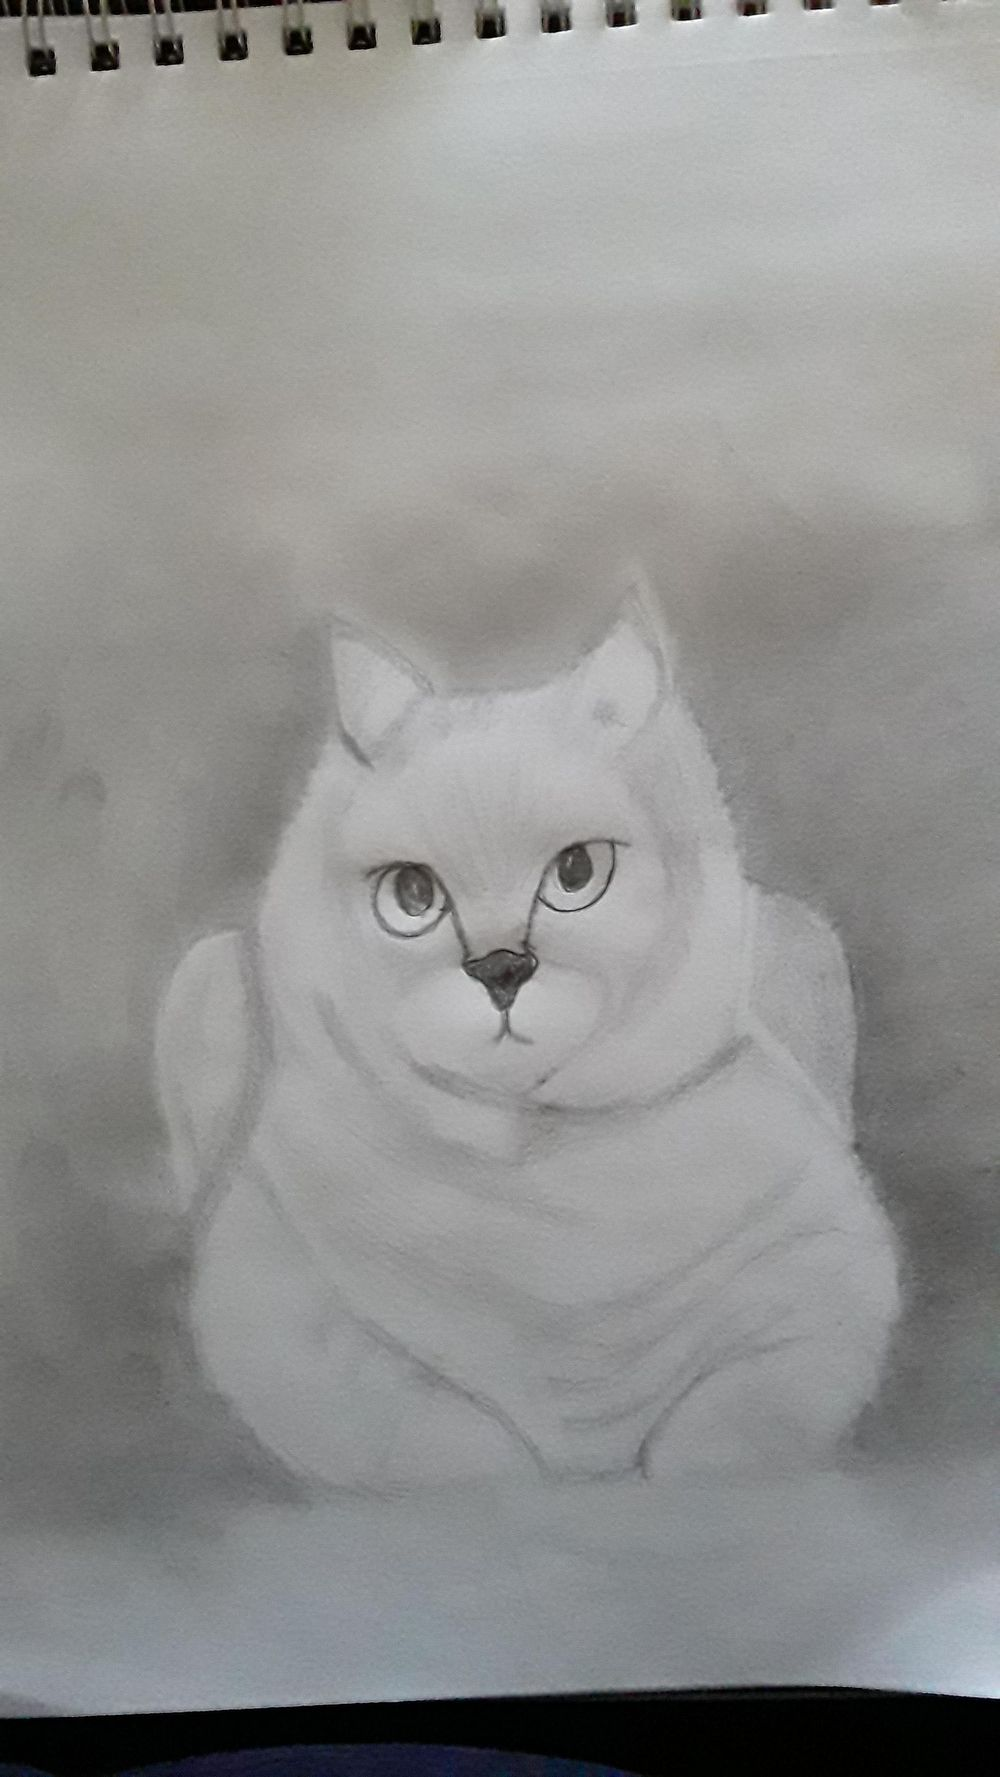 Cat - image 2 - student project